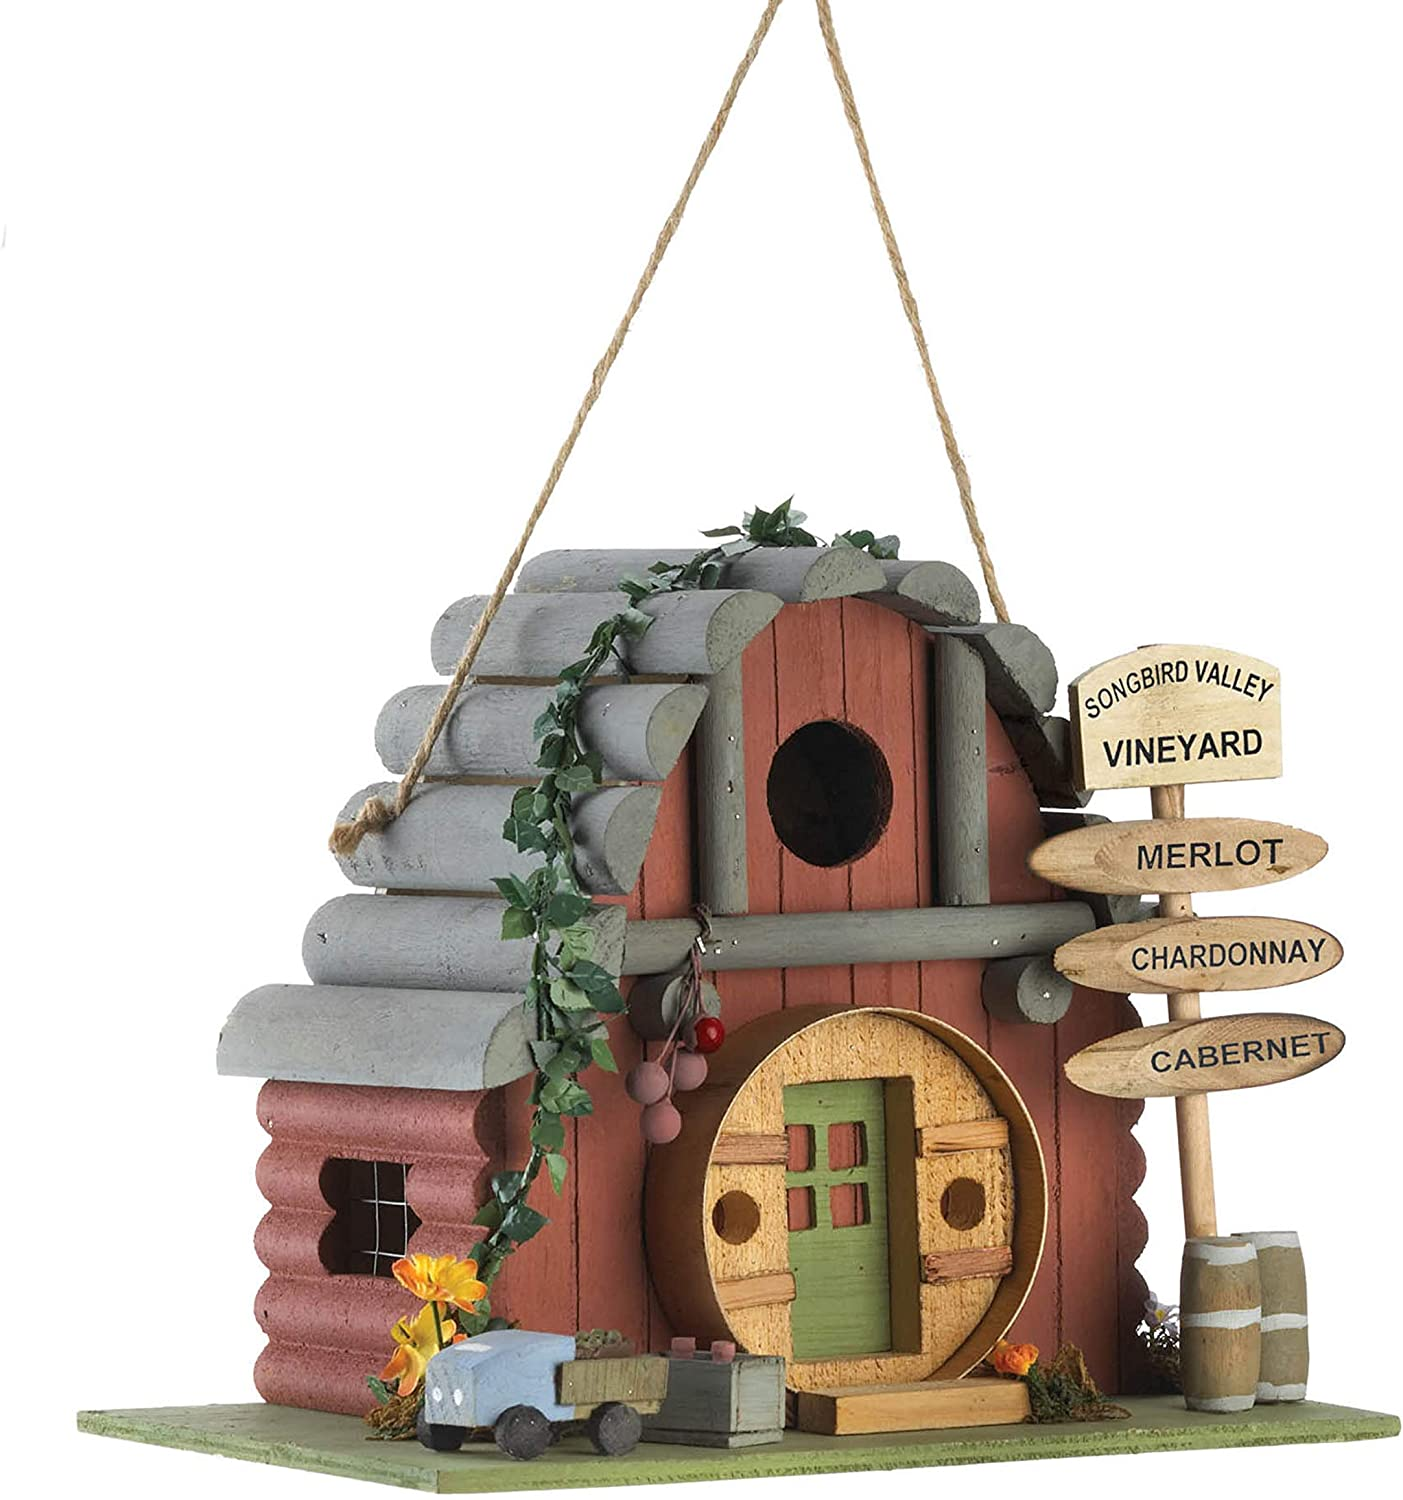 Songbird Valley Vineyard Vintage In a Outlet ☆ Free Shipping popularity Winery 10.75x6.75x8.5 Birdhouse